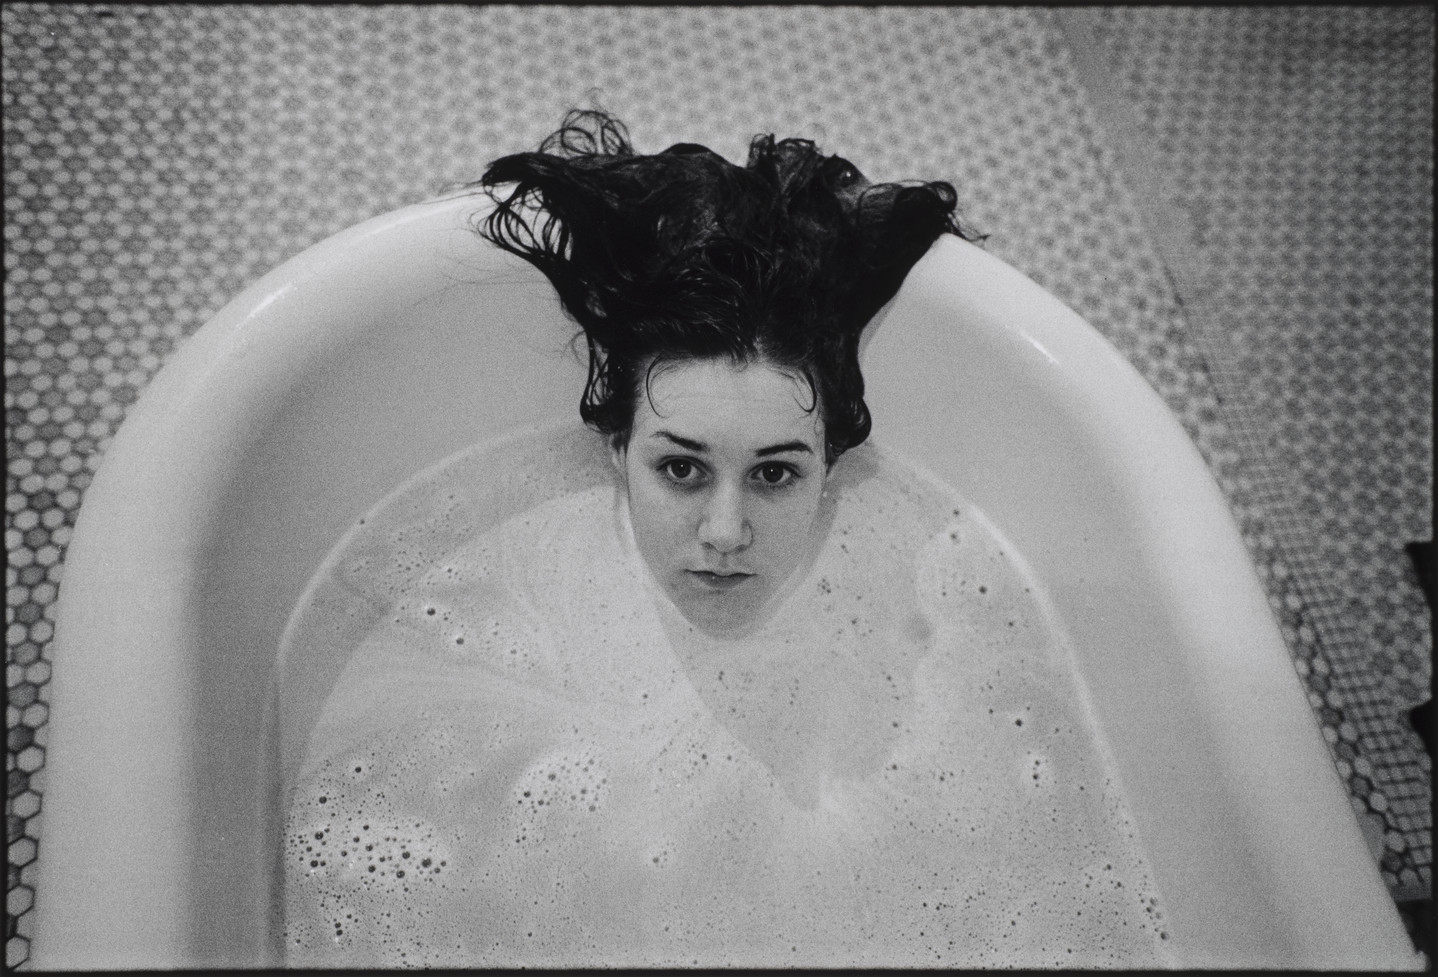 A black and white photograph of a girl submerged in a white bathtub. Only the girl's head is visible above the soap suds, and her dark hair hangs over the side of the tub. The floor beneath the tub is tiled.